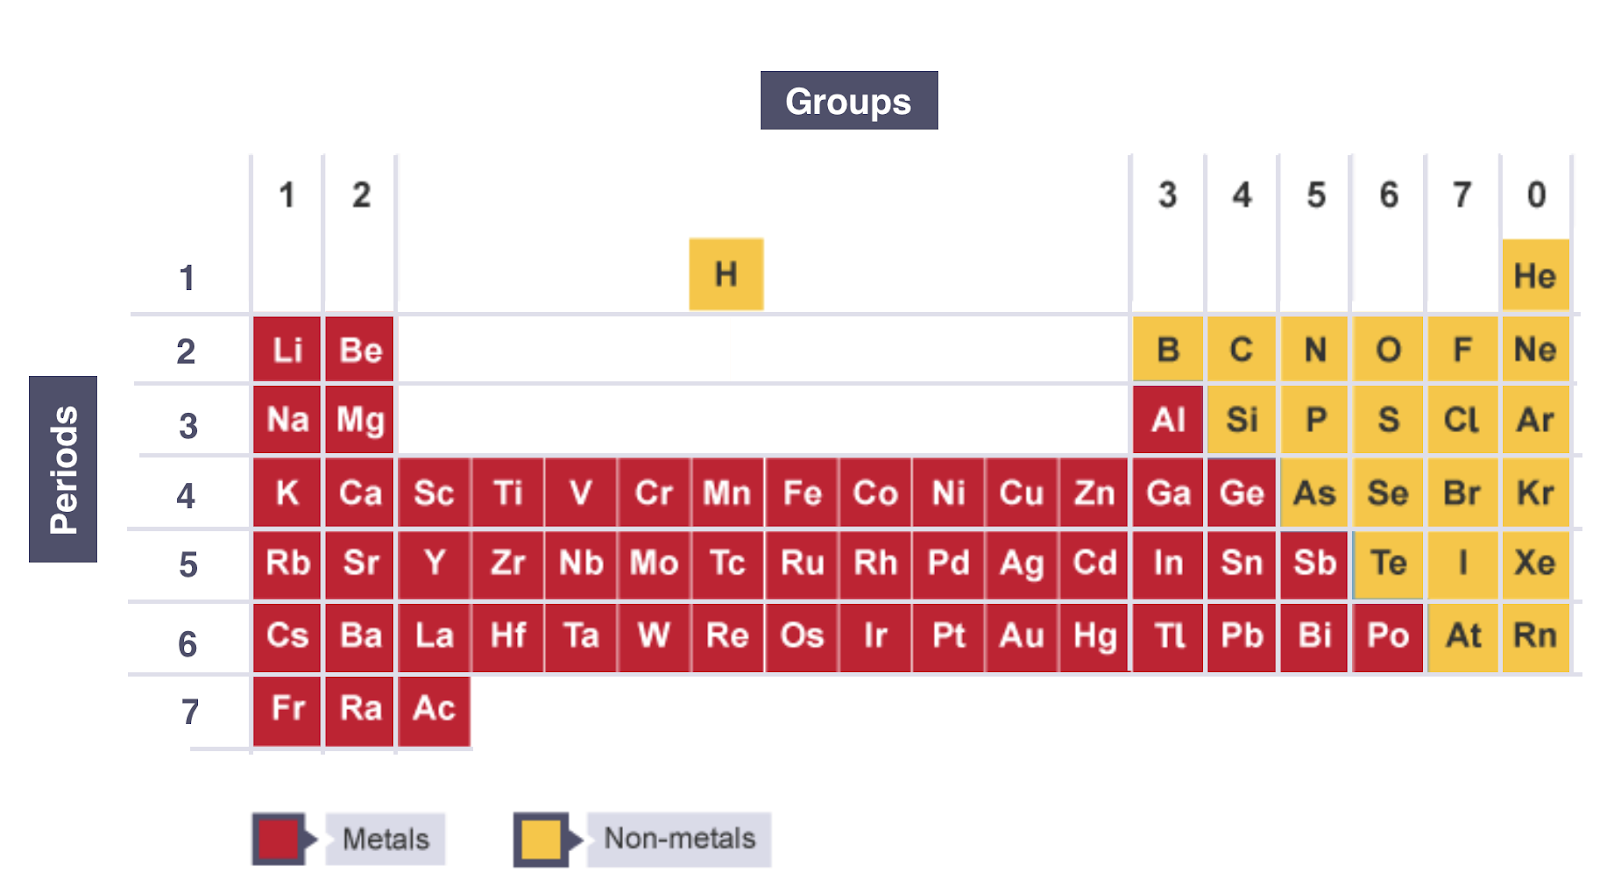 Igcse chemistry 2017 118 understand how elements are arranged in the periodic table all elements are arranged urtaz Image collections